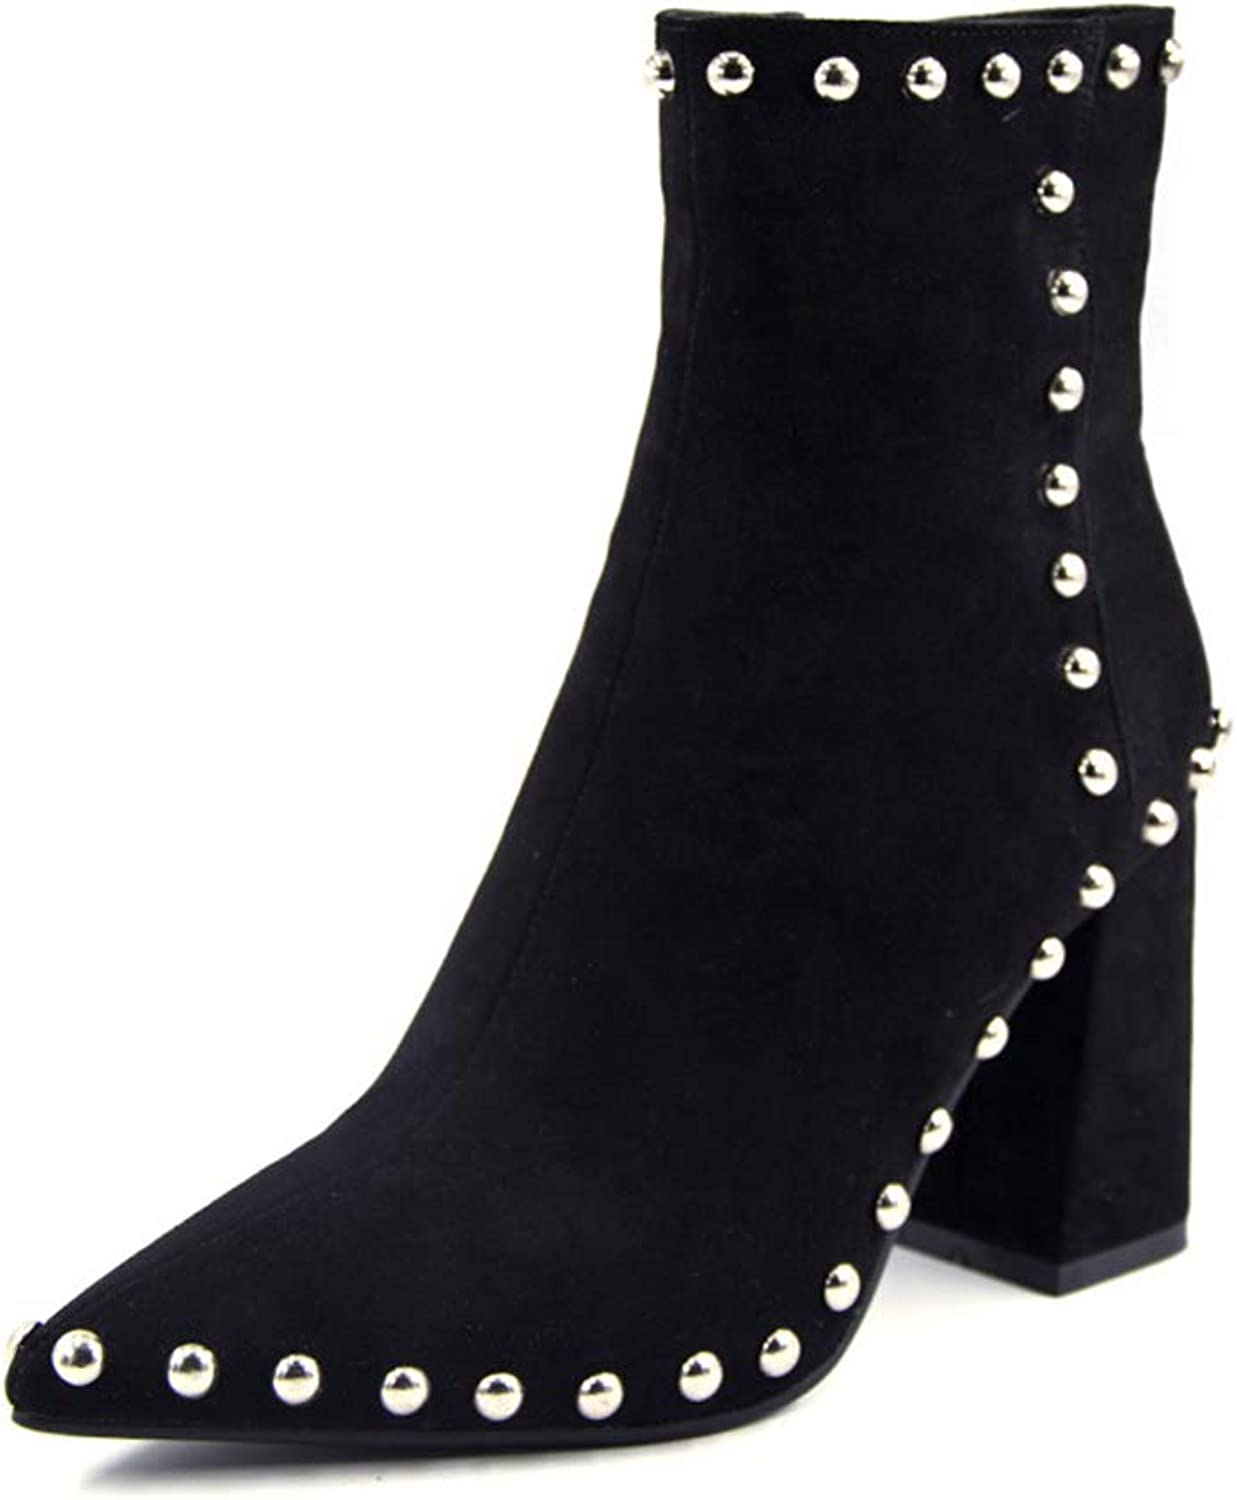 Zarbrina Womens Chunky Heel Ankle Boots Ladies Fashion Round Toe Rubber Sole Short Plush Folck Zipper Up Slip On Winter Party Dress shoes